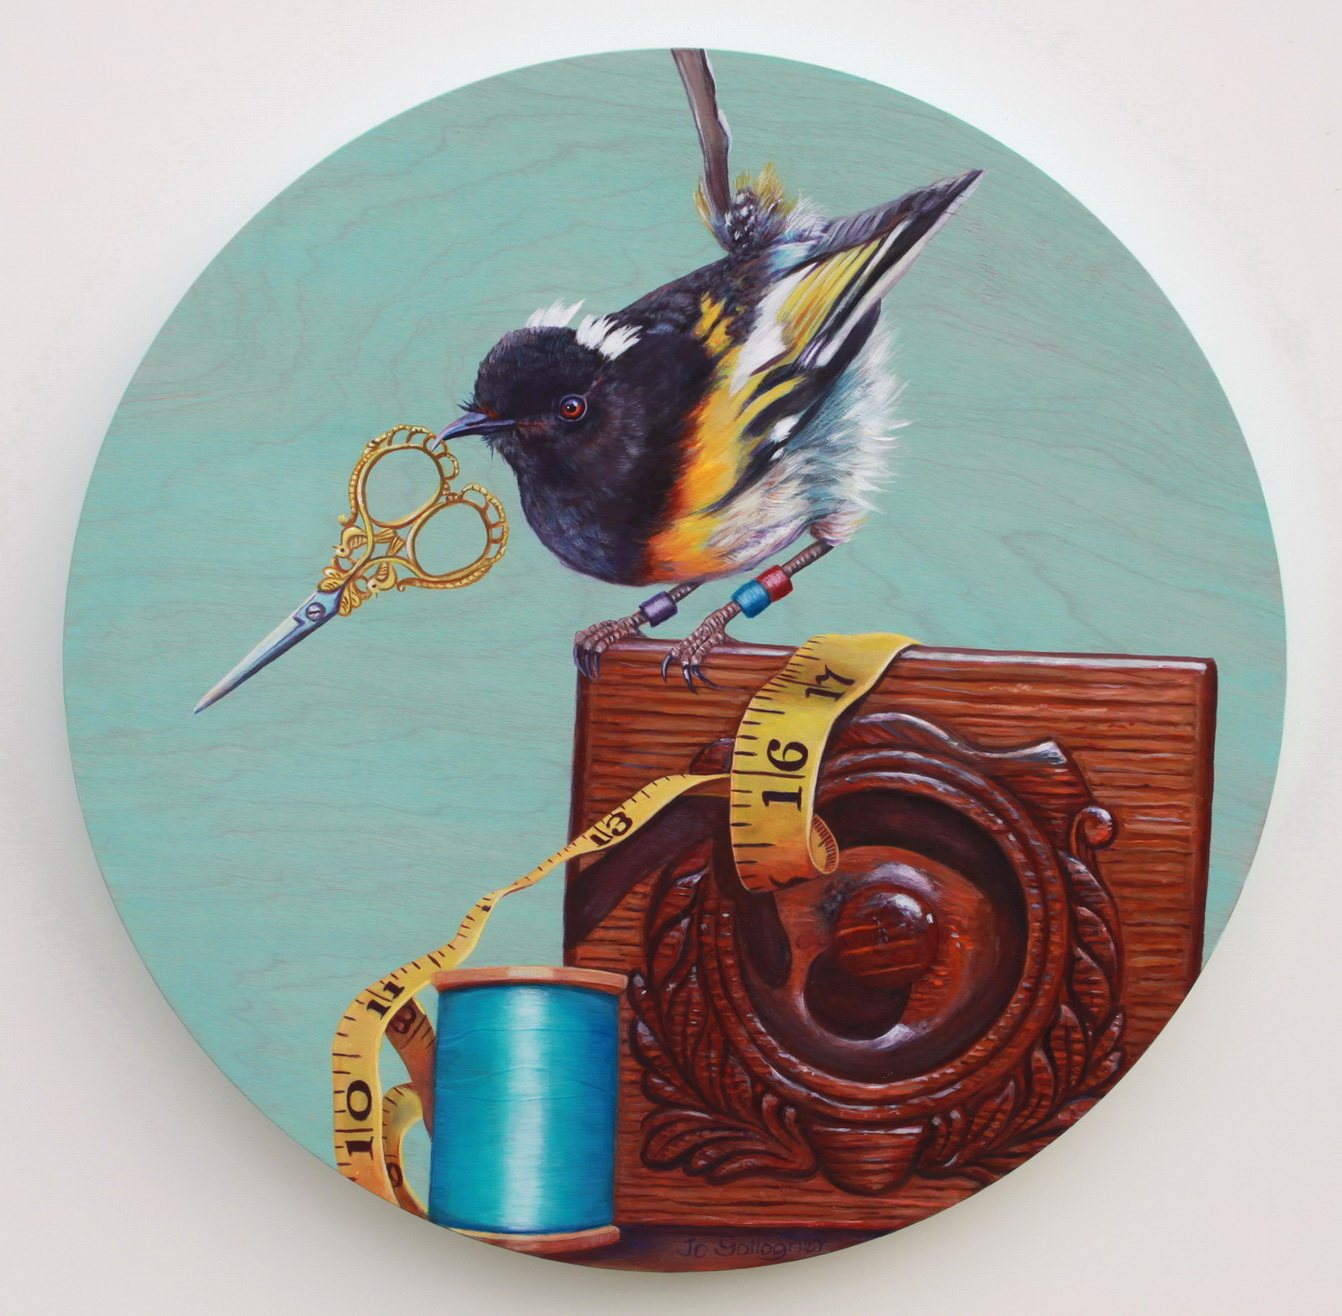 The Stitchbird...armed & dangerous 